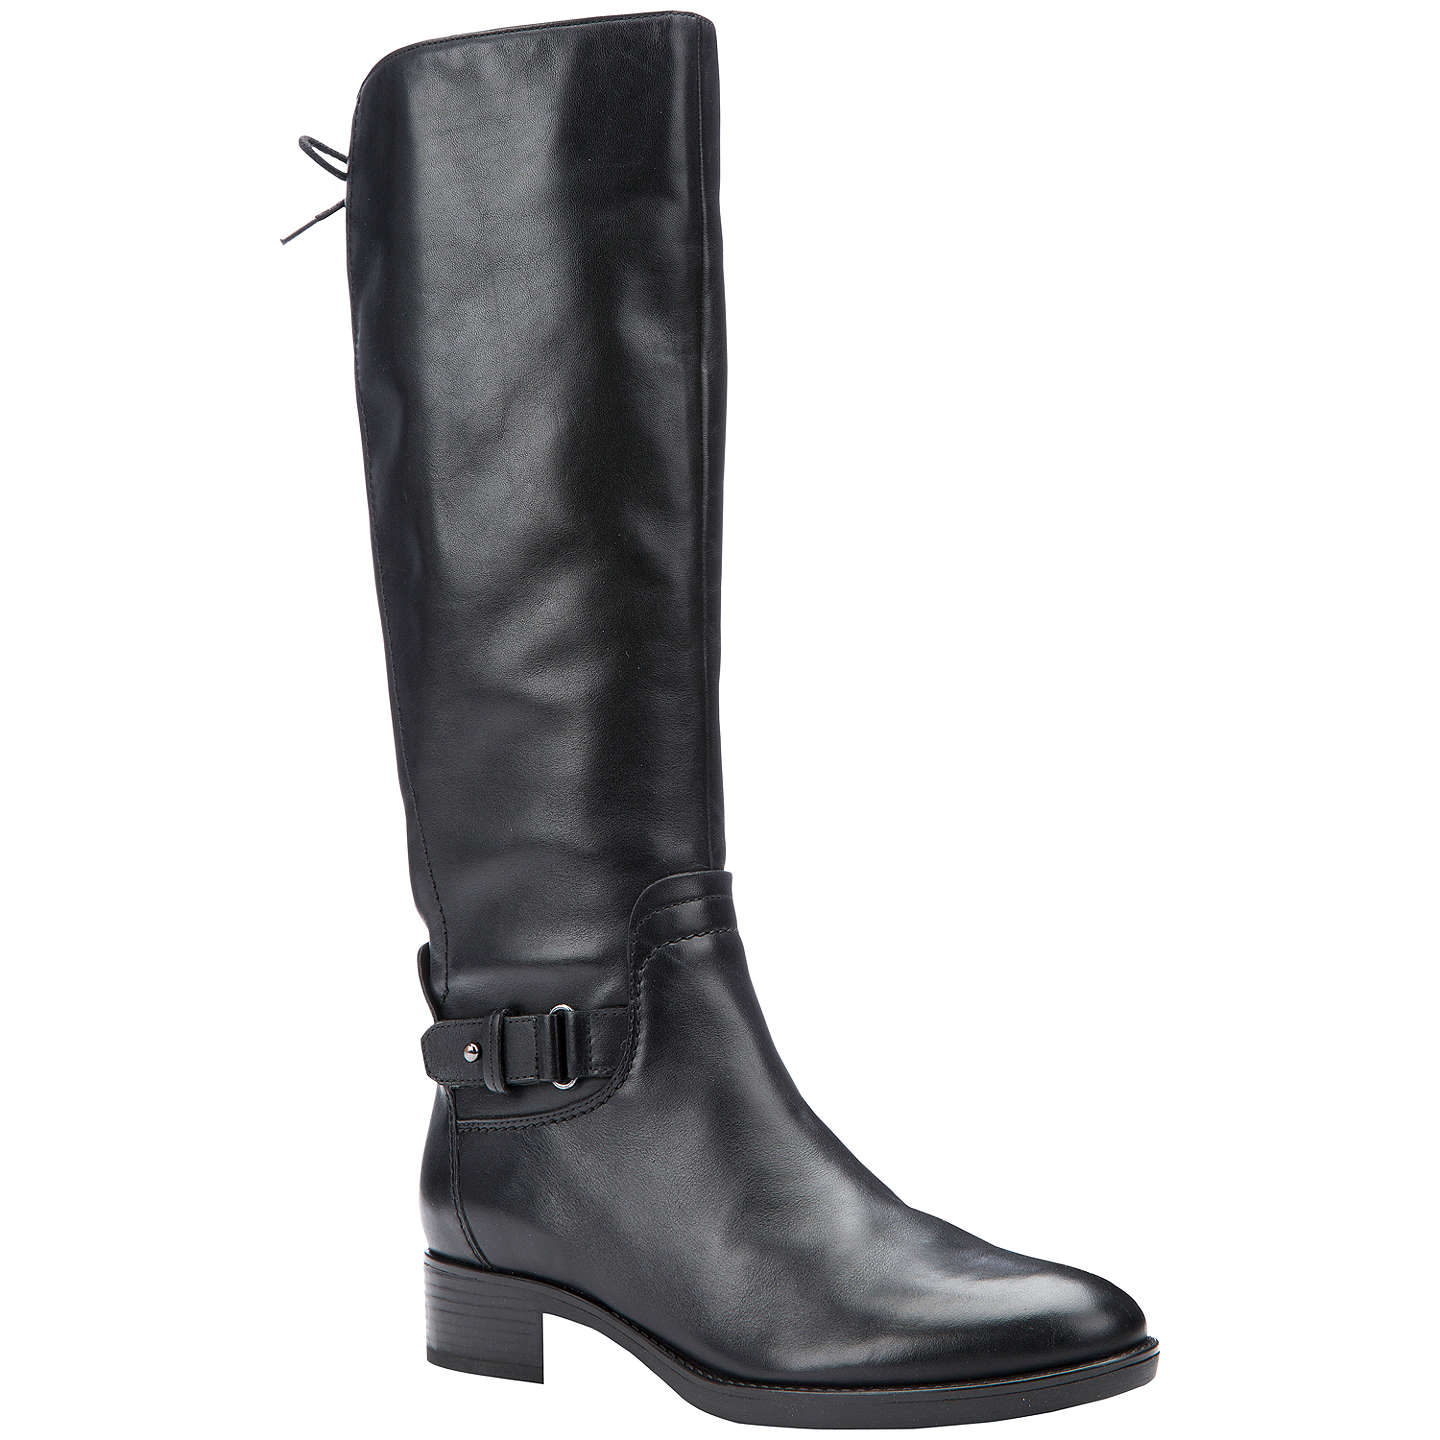 BuyGeox Felicity A Block Heeled Knee High Boots, Black Leather, 3 Online at johnlewis.com